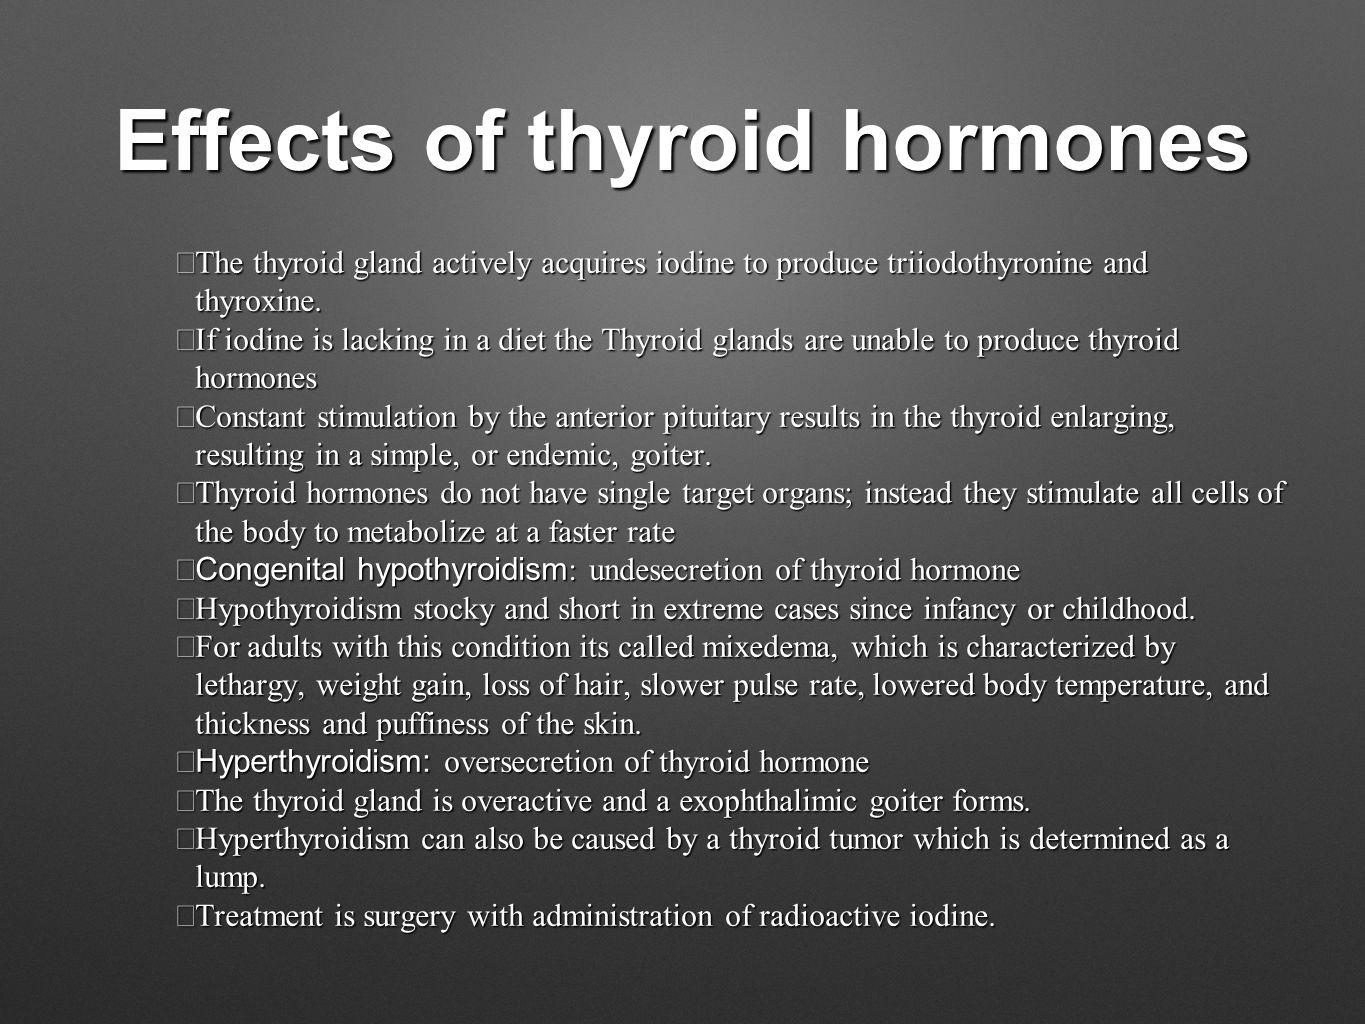 Effects of thyroid hormones  The thyroid gland actively acquires iodine to produce triiodothyronine and thyroxine.